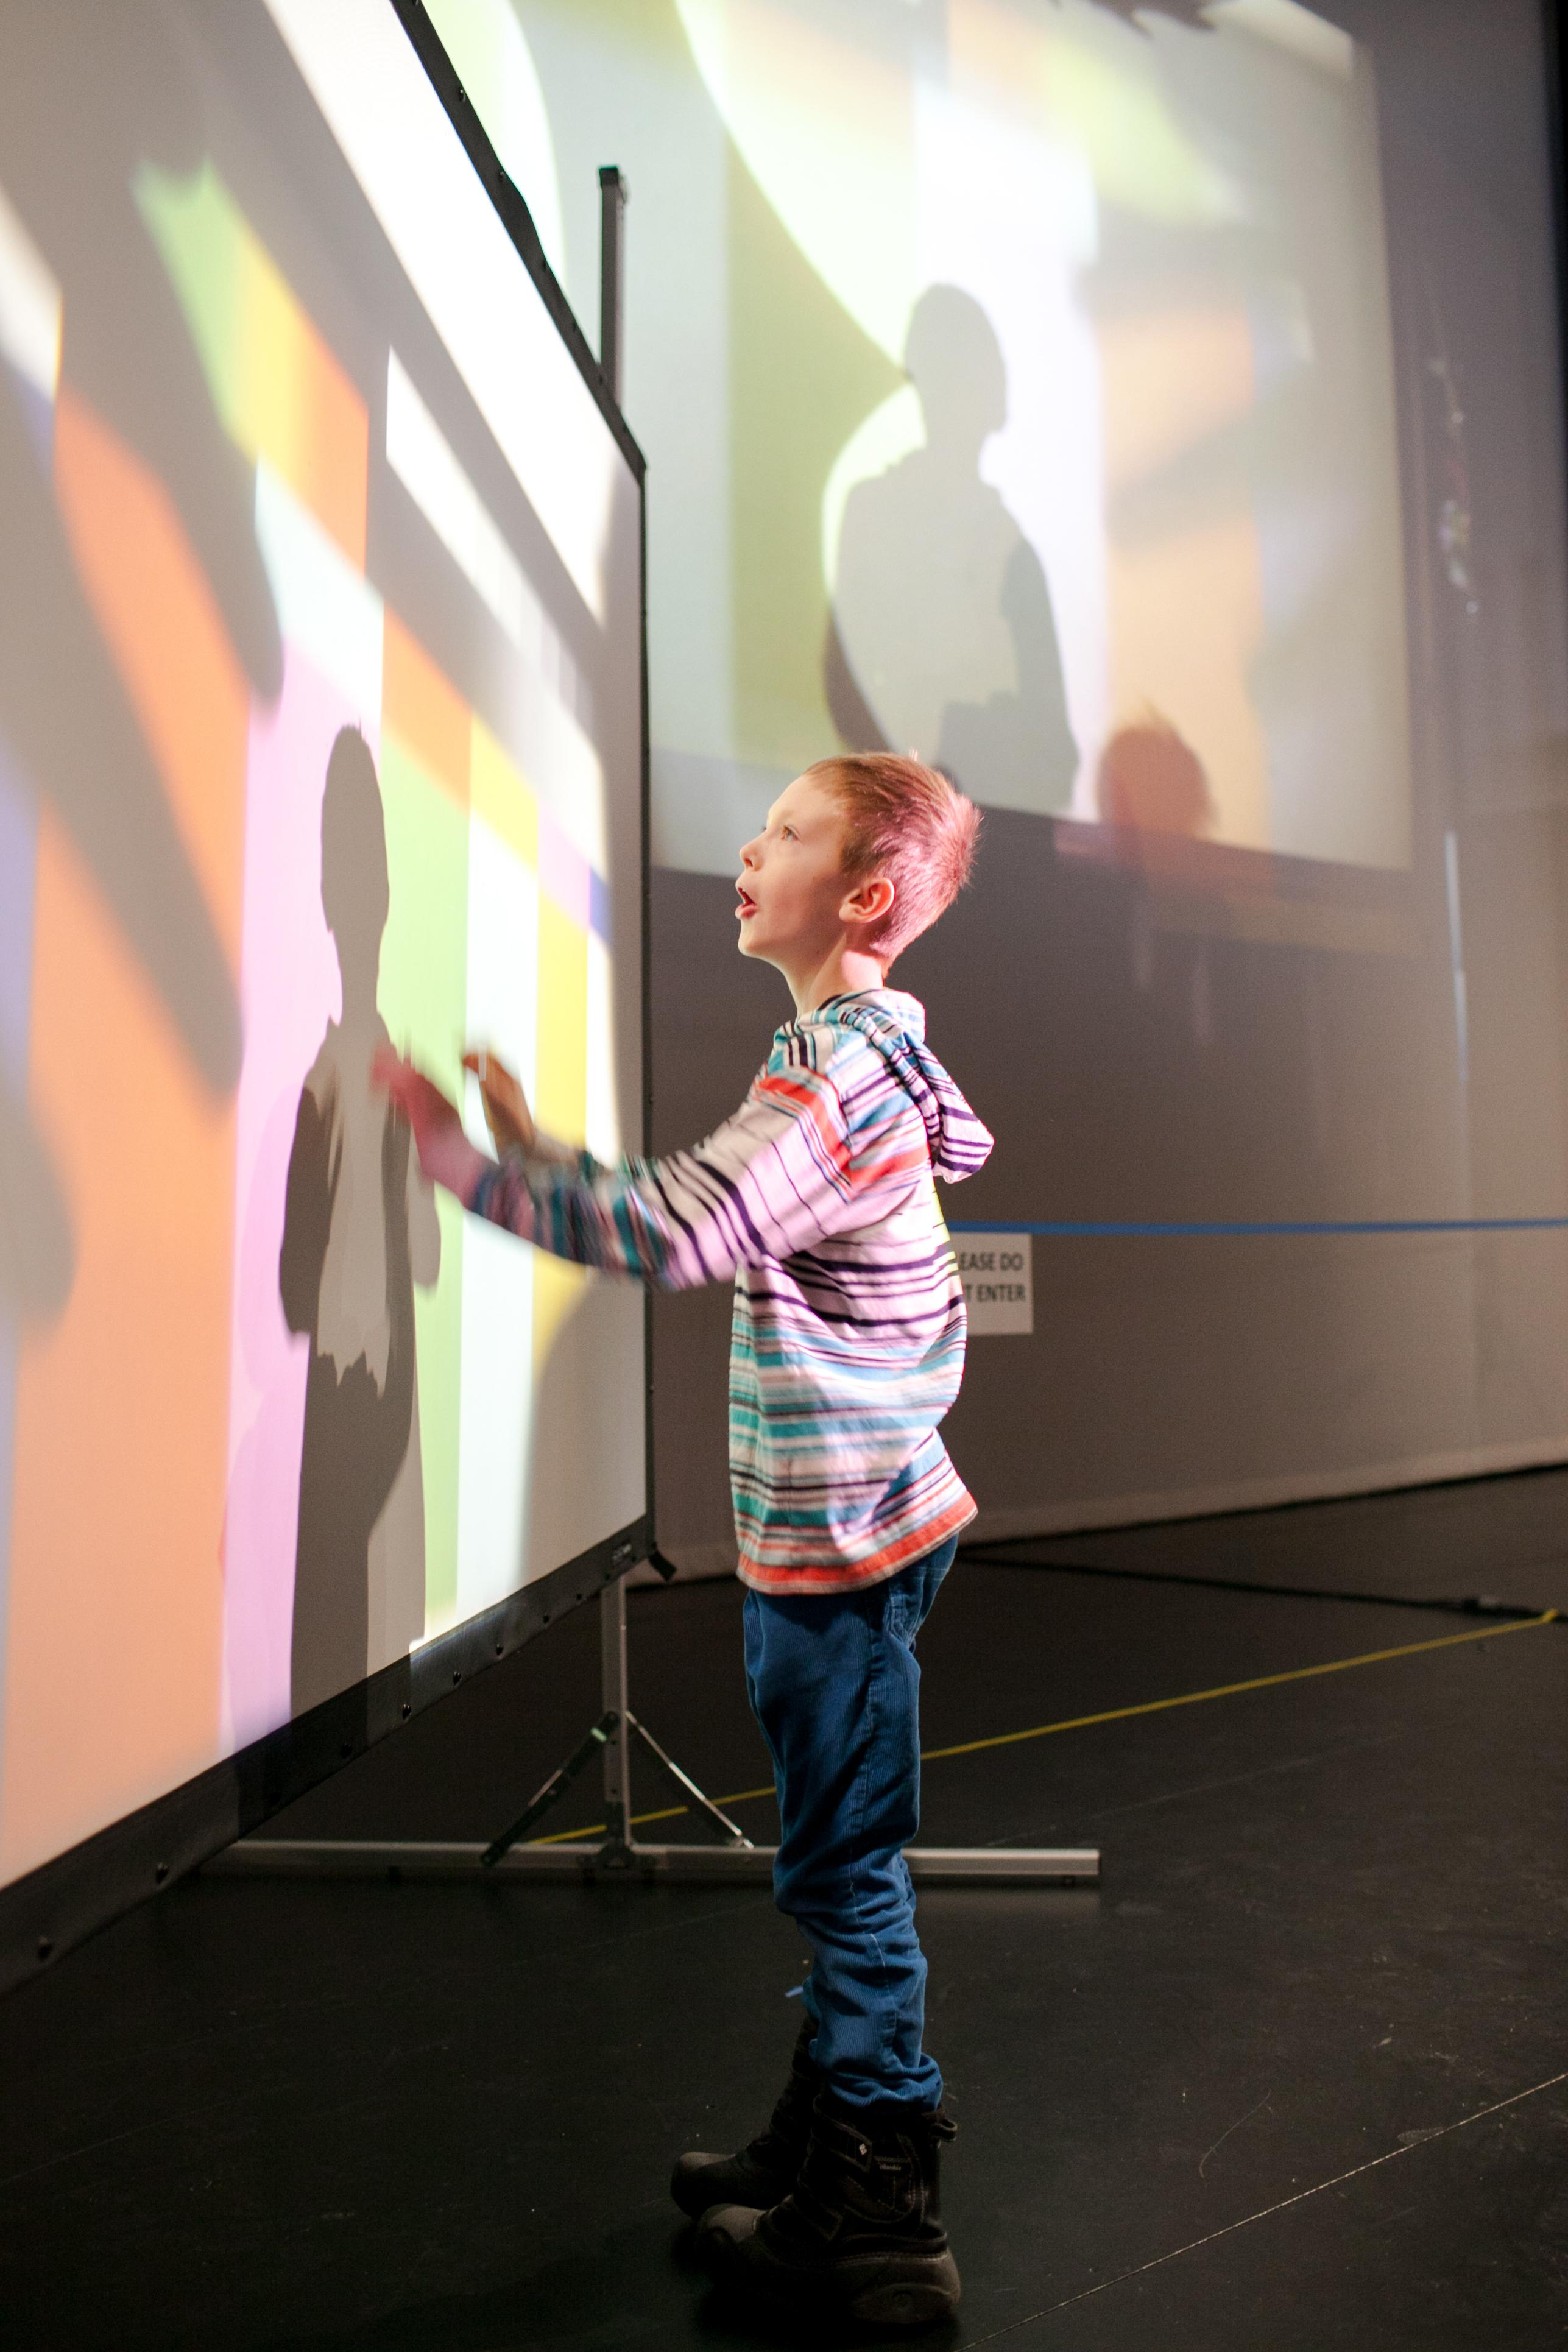 A young boy reaches out to touch a screen projected with a grid of colorful rectangles.